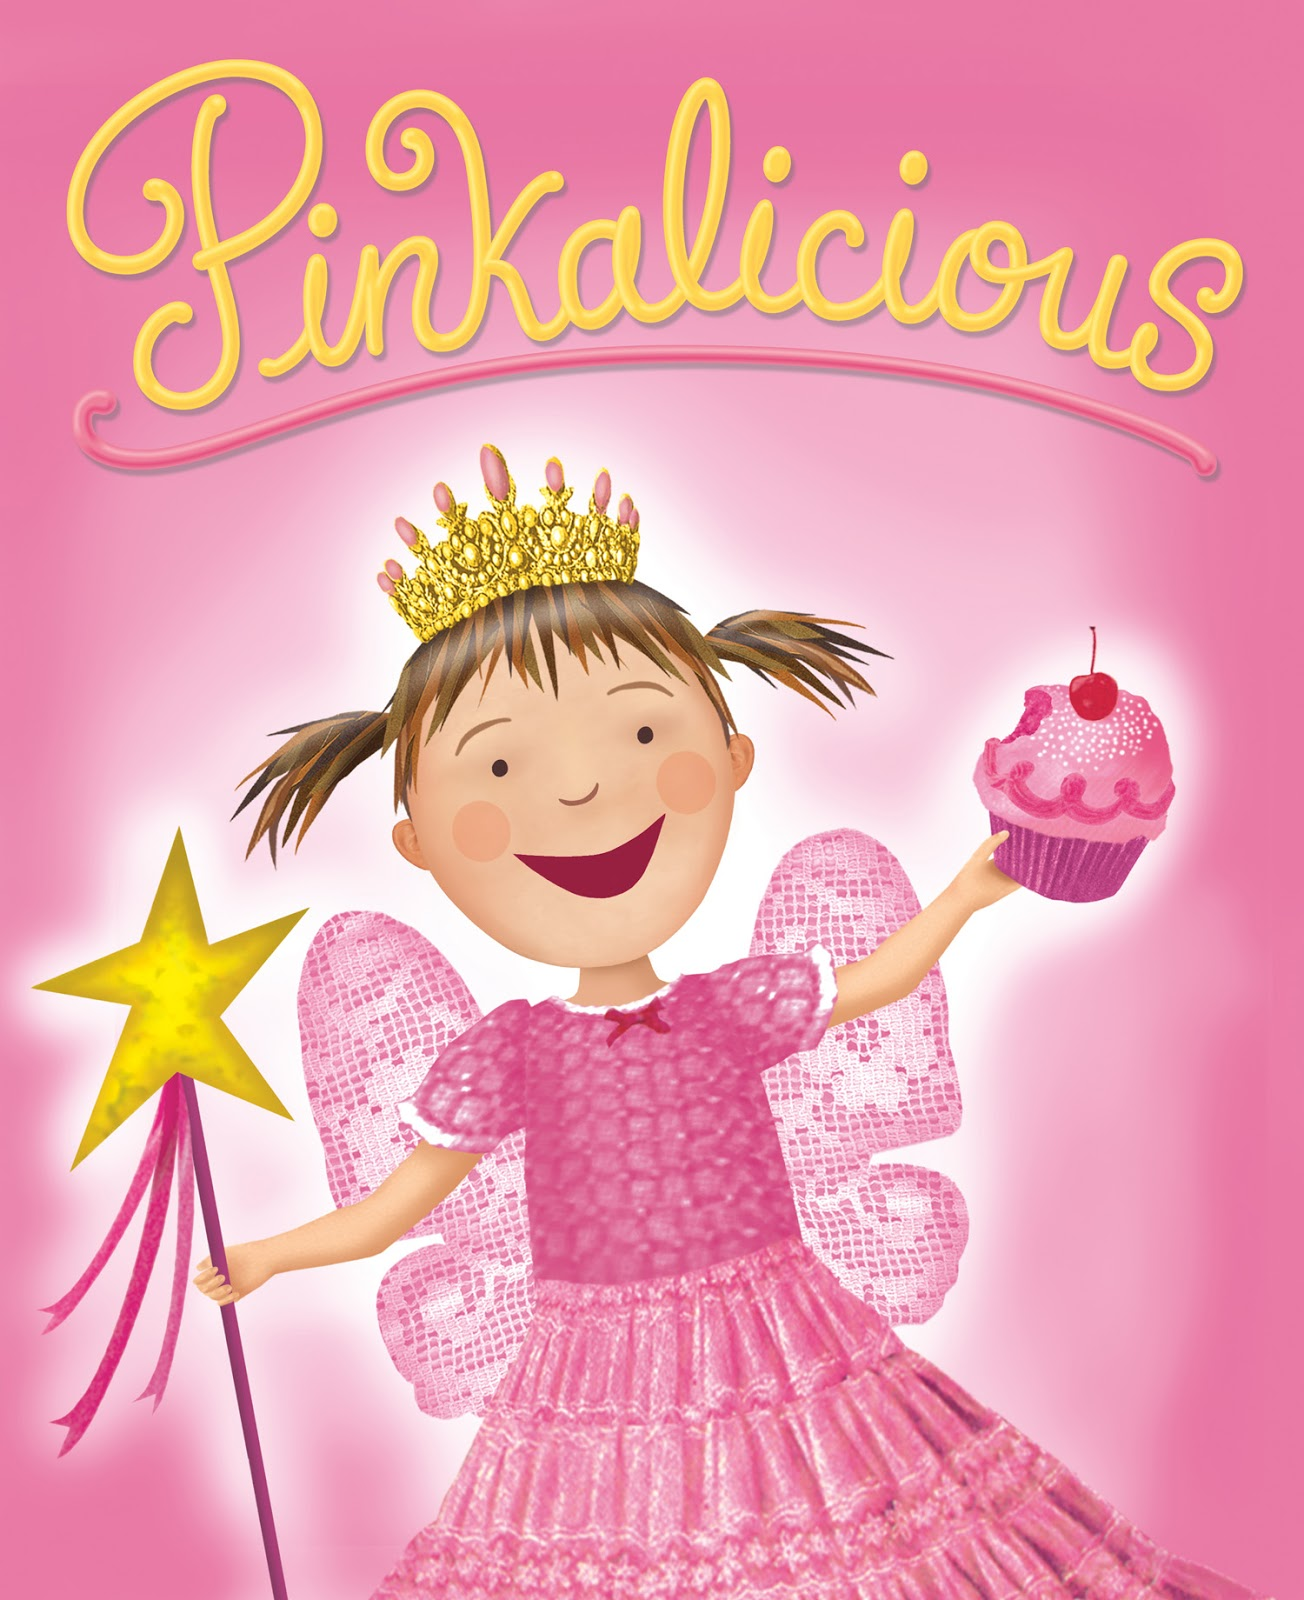 keep calm and stay awesome A PINKALICIOUS birthday party : Pinkalicious Cover 41 from omgitserinpratt.blogspot.com size 1304 x 1600 jpeg 295kB